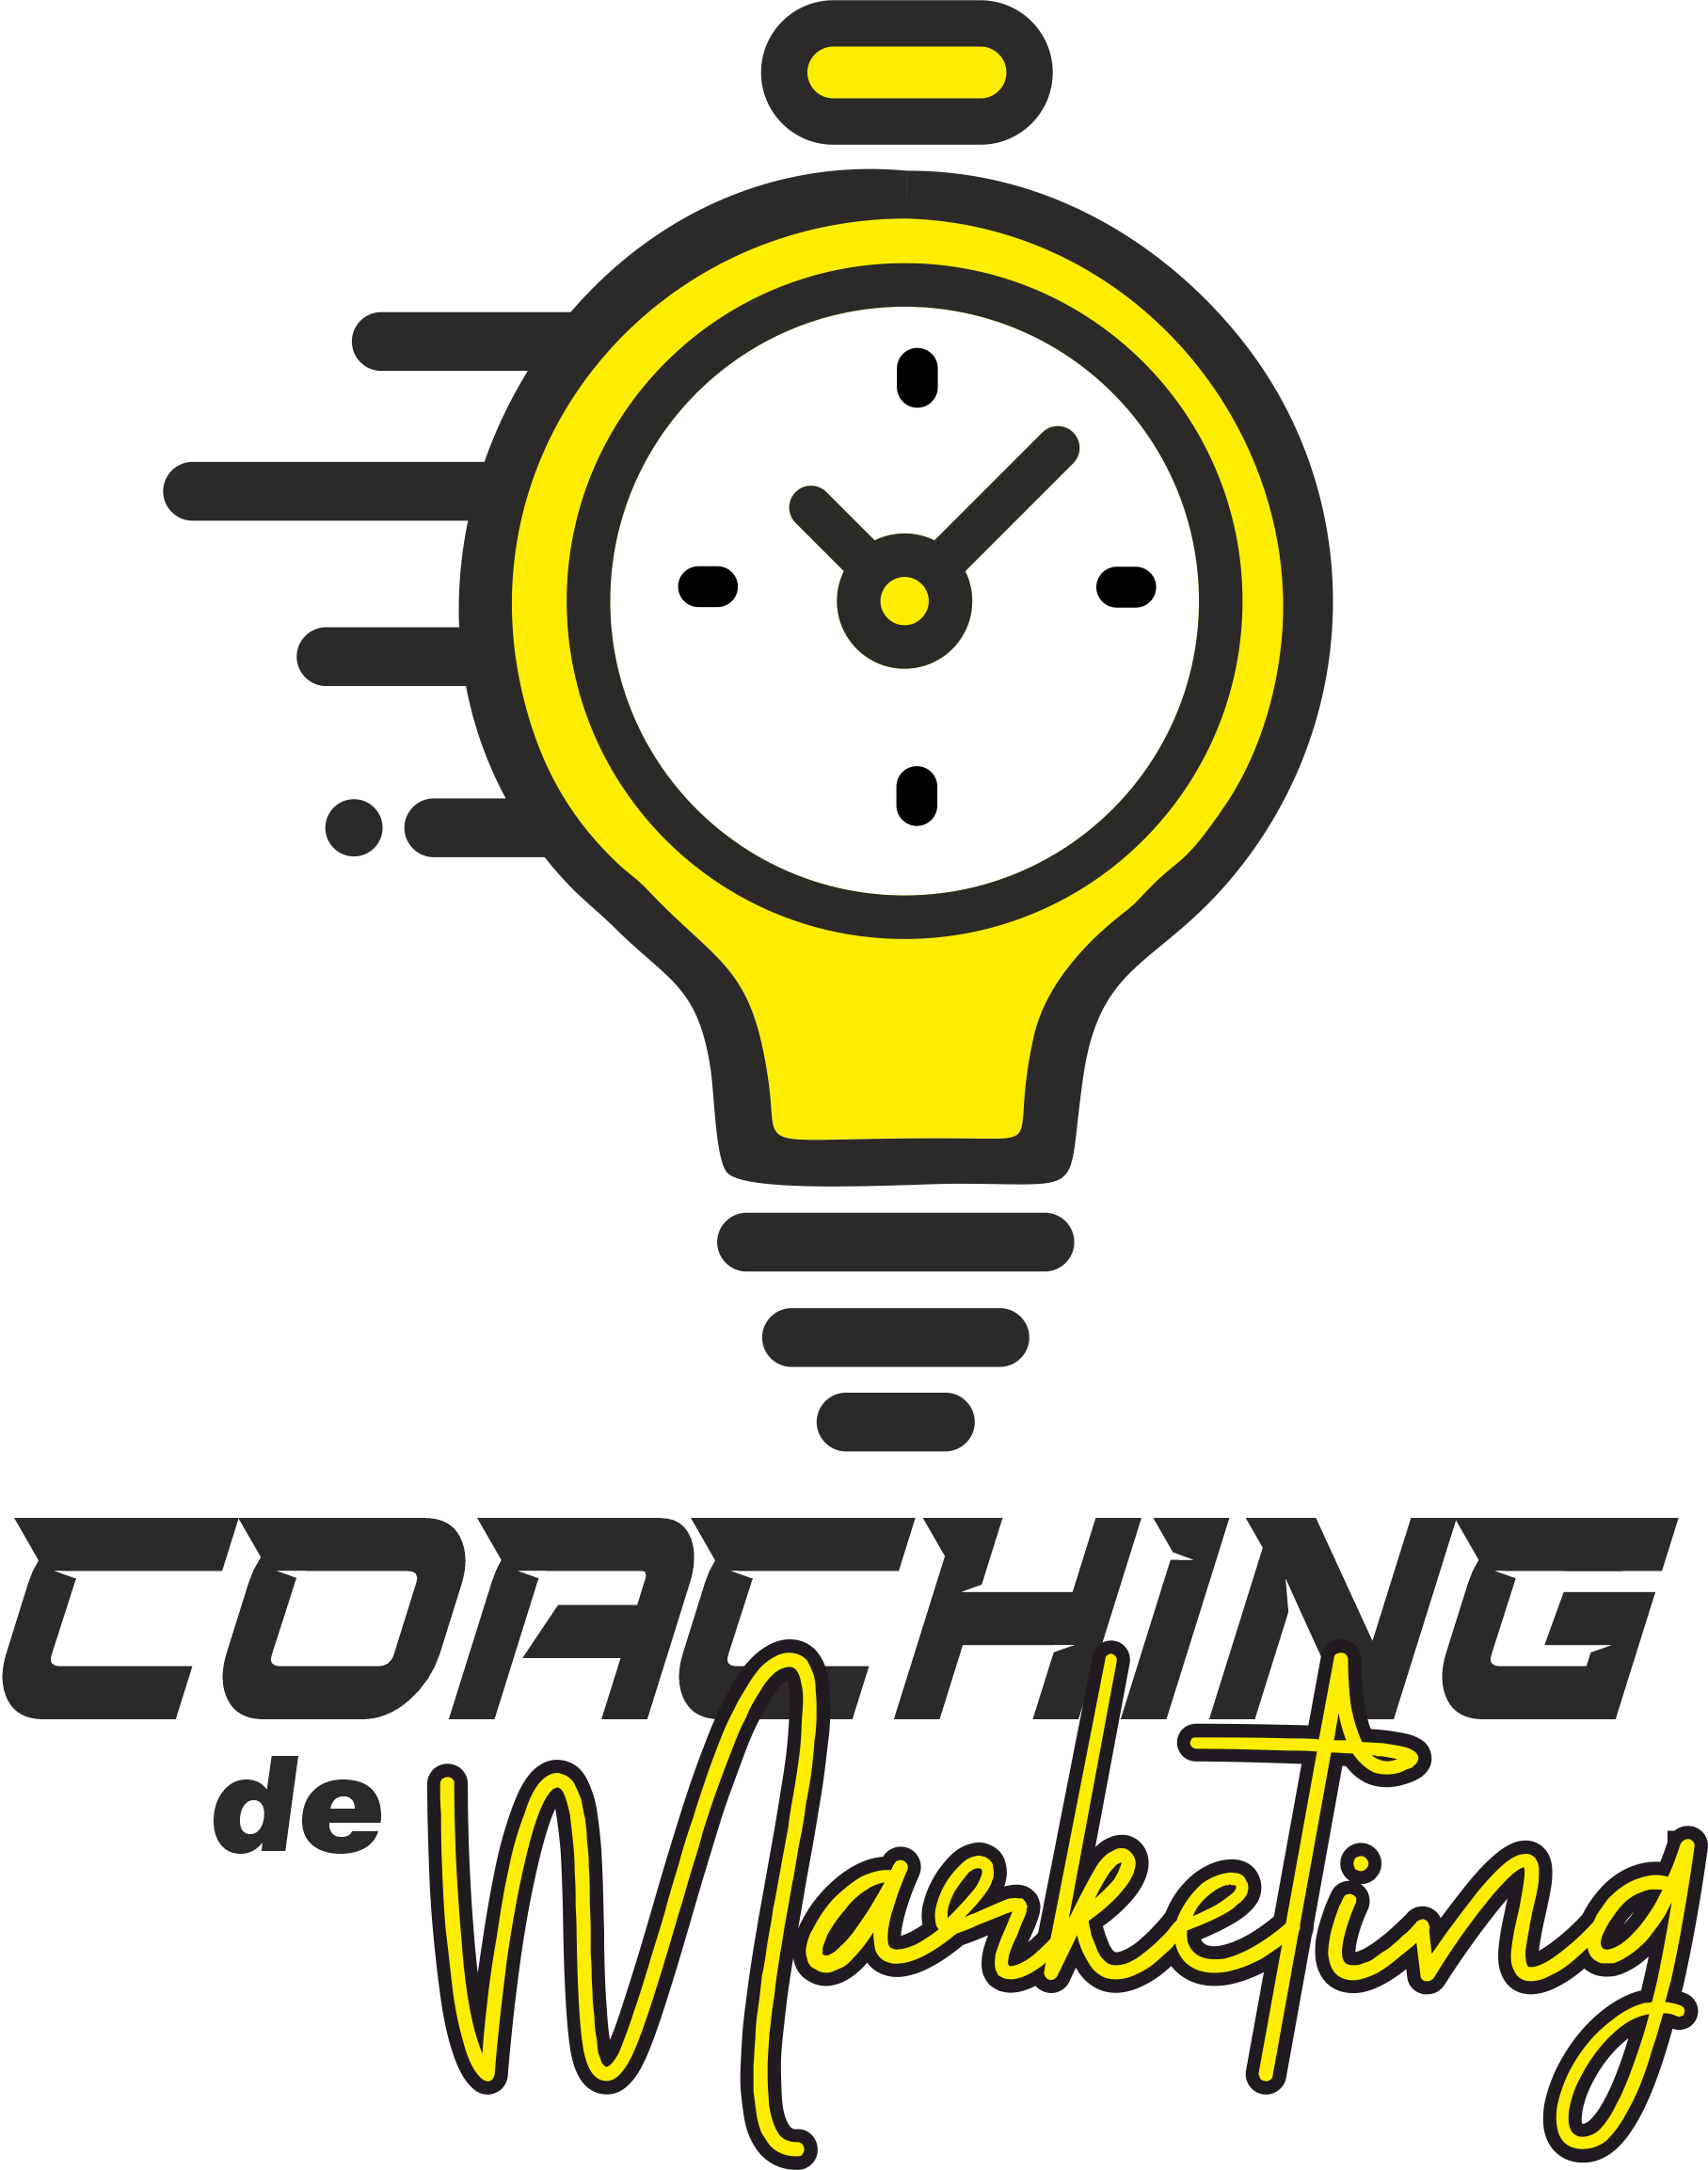 Coaching de Marketing